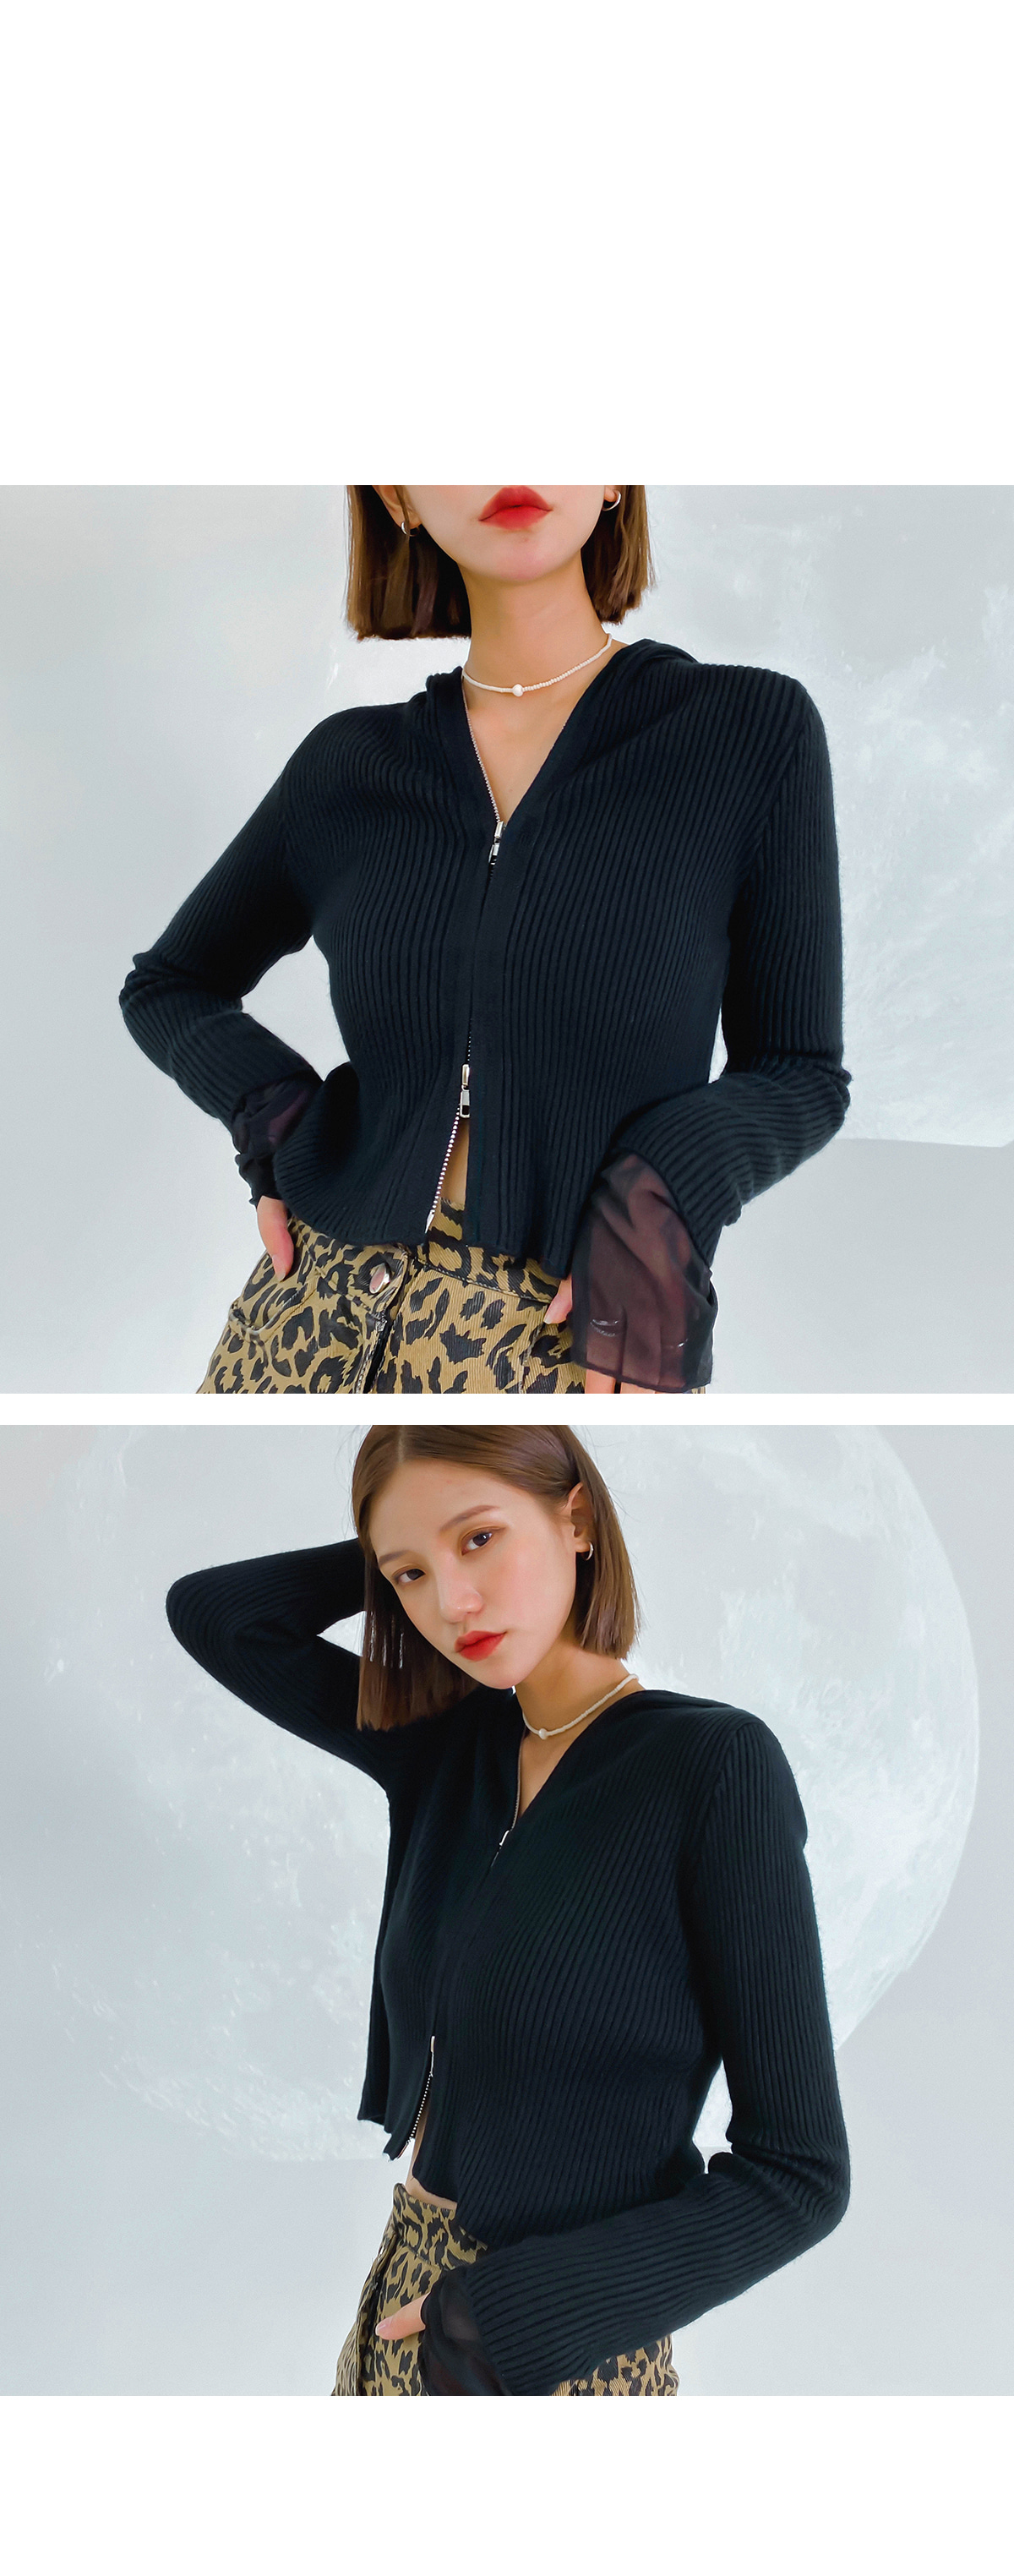 Hooded cropped autumn knit cardigan